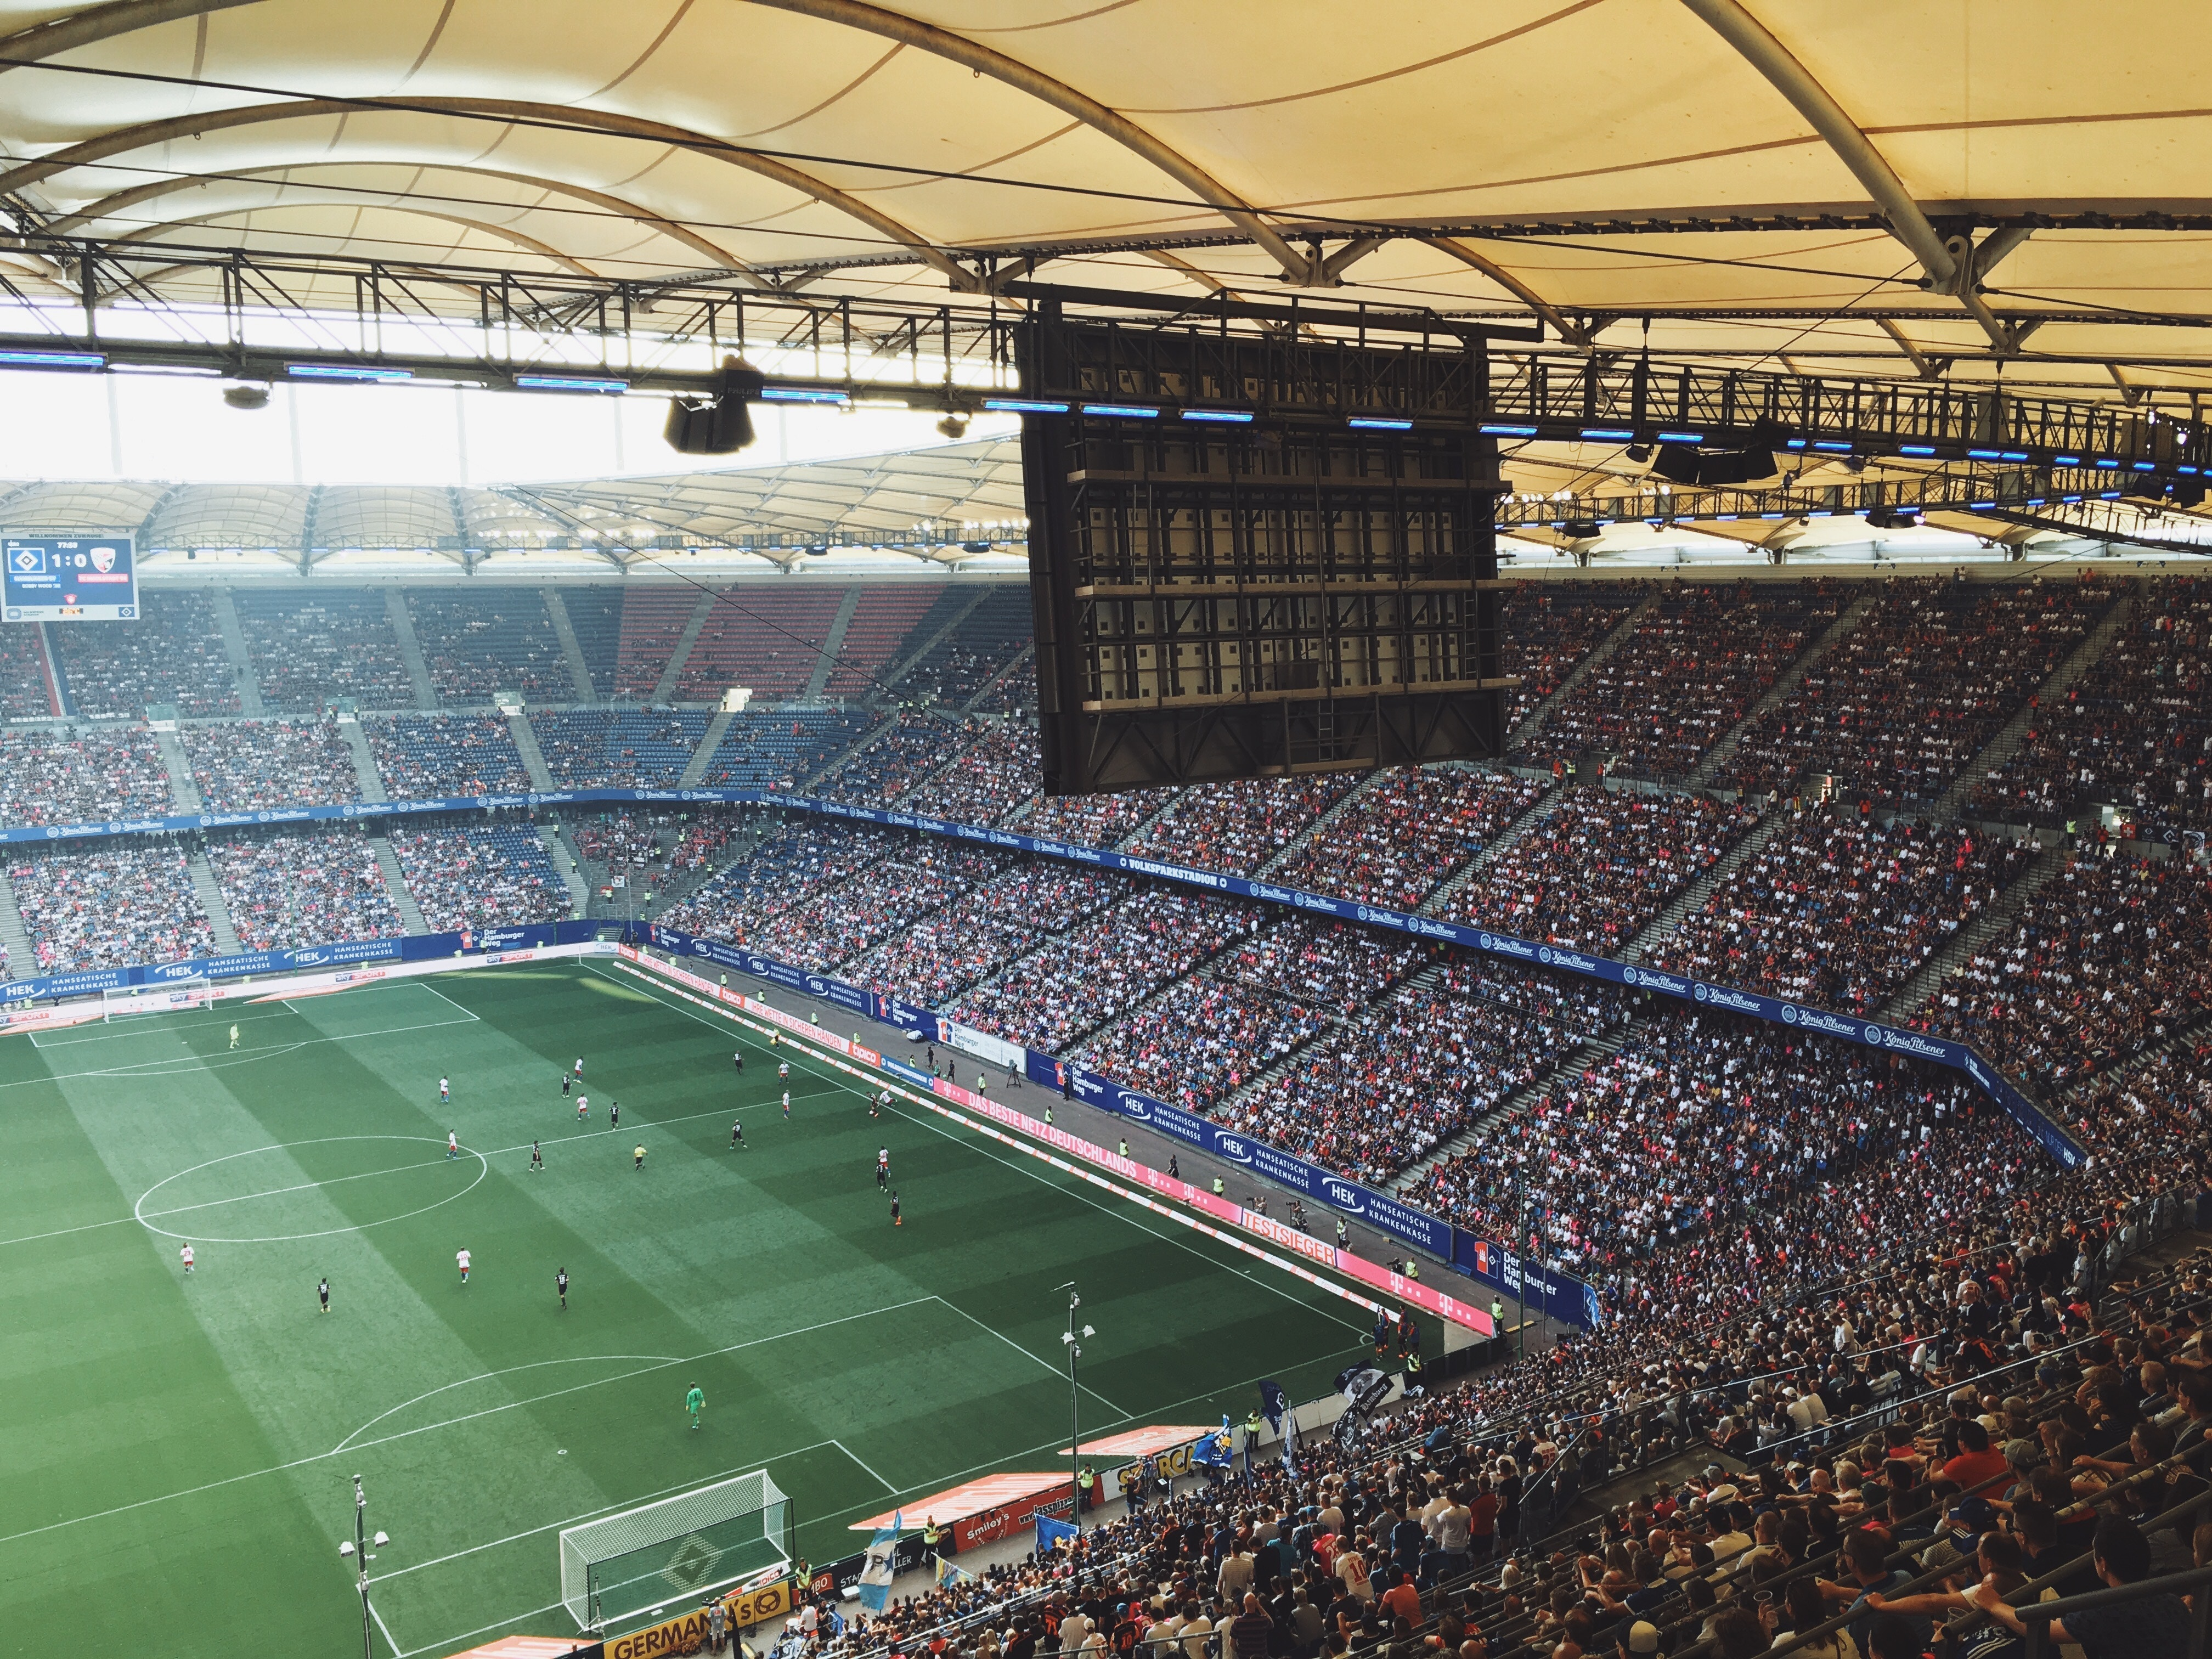 Momentum Creates Momentum: A Look at a Great Marketing Principle from The World Cup